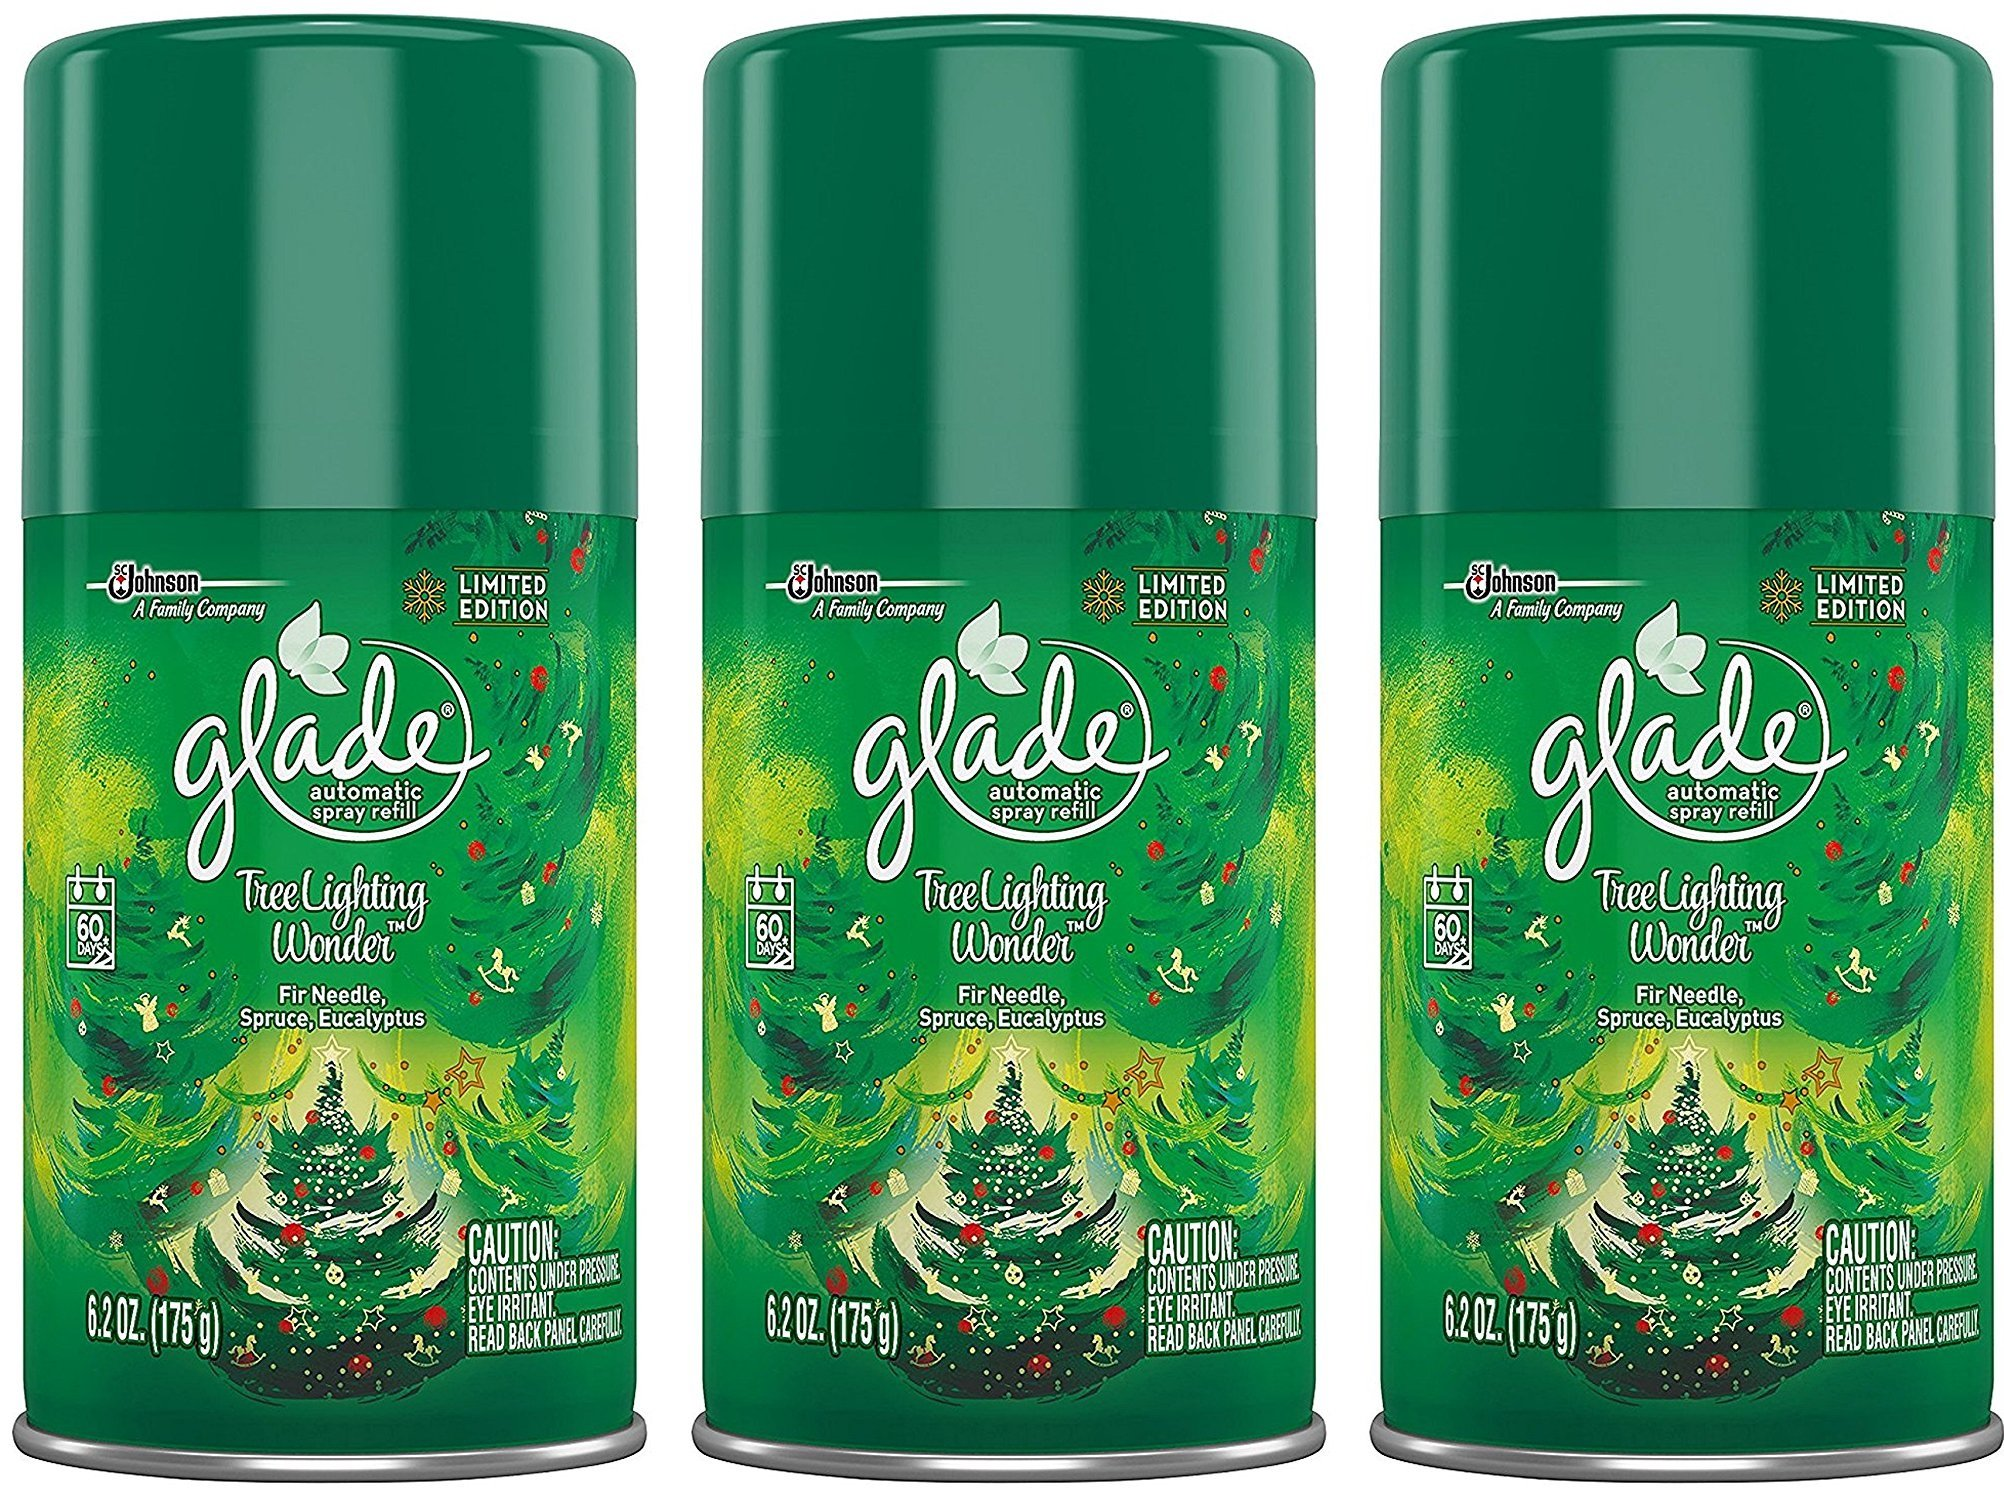 Glade Automatic Spray Refill - Limited Edition - Winter Collection 2017 - Tree Lighting Wonder - Net Wt. 6.2 OZ (175 g) Per Refill Can - Pack of 3 Refill Cans